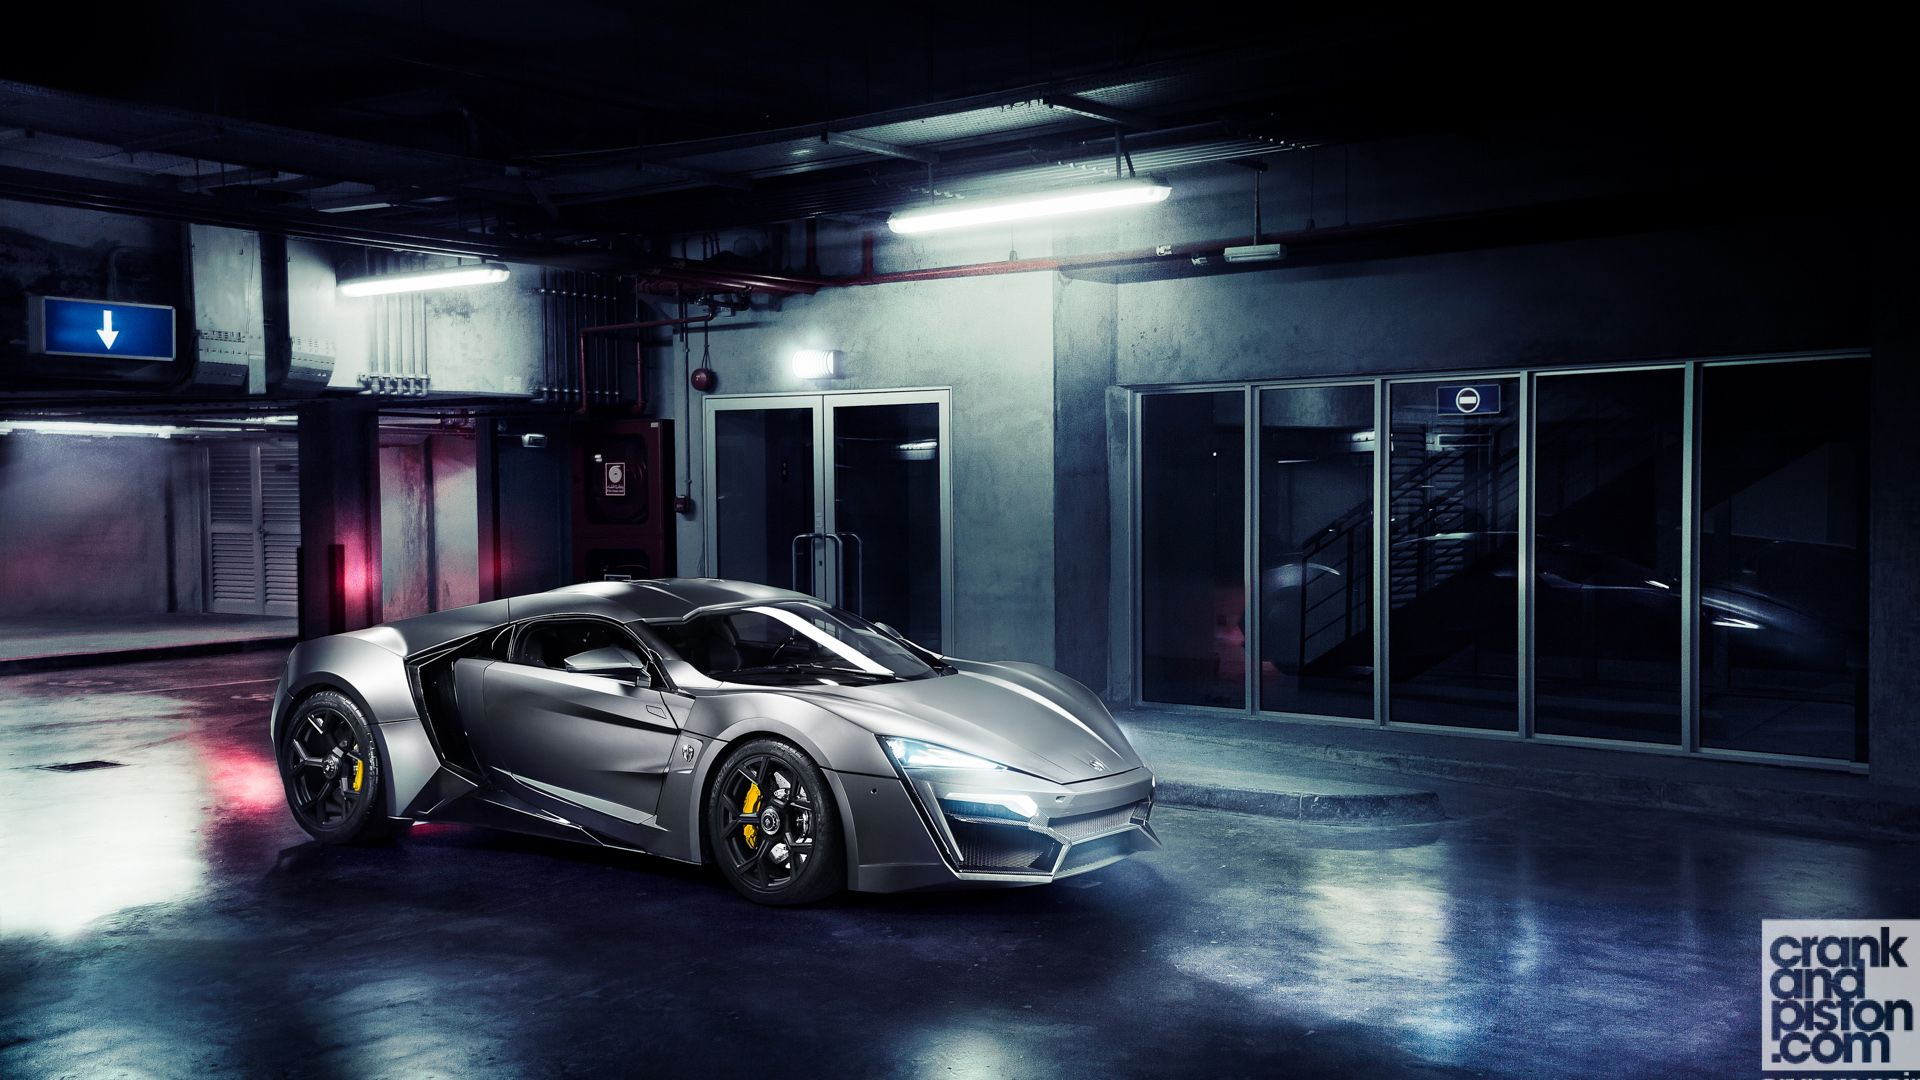 Pin by nathan norman on wallpaper desktop lykan - Lykan hypersport wallpaper 1920x1080 ...